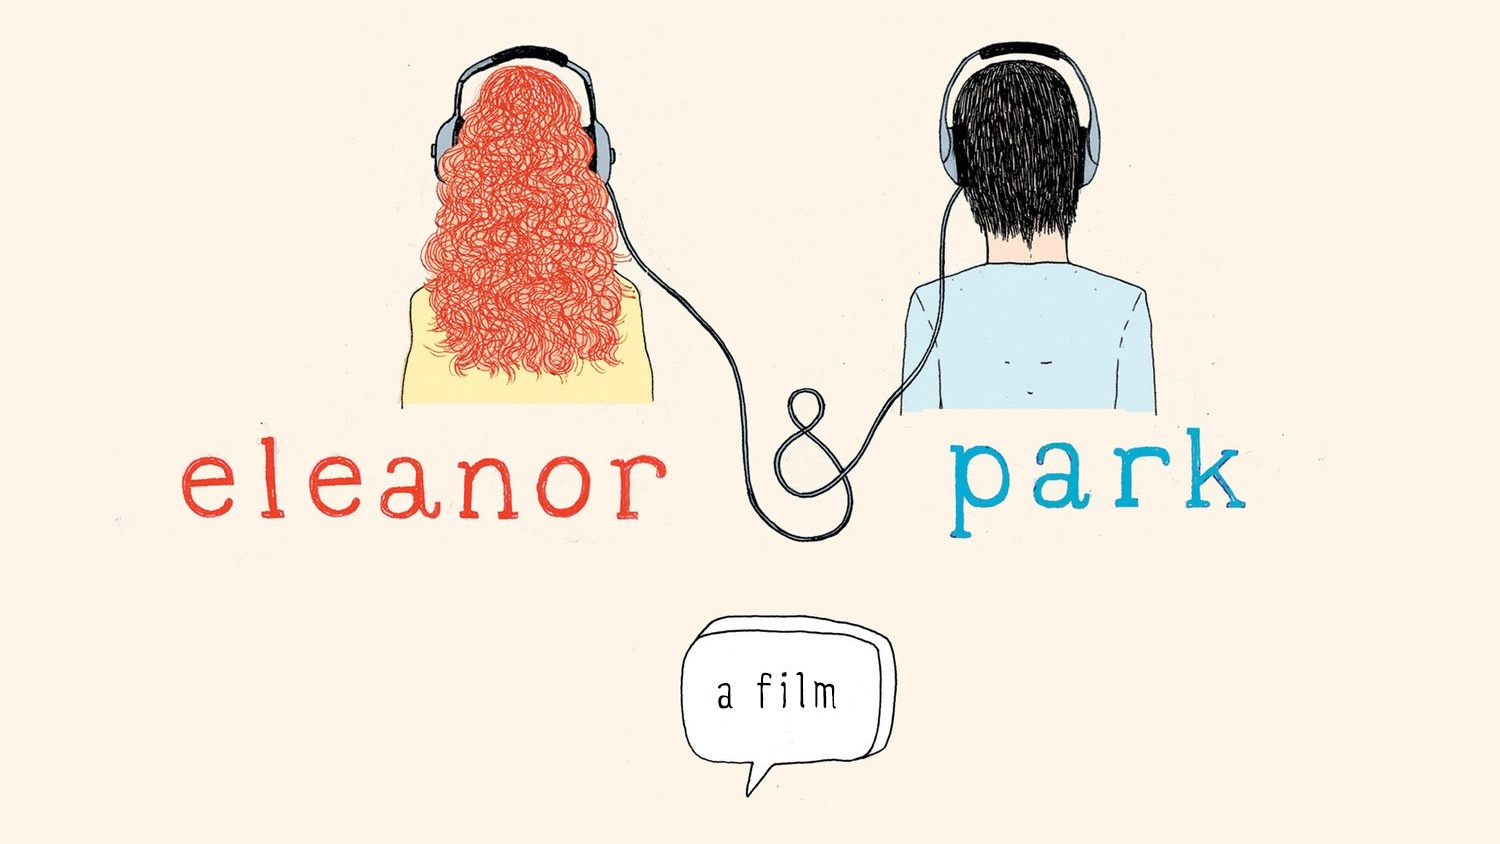 film-adaptation-eleanor-park.jpg